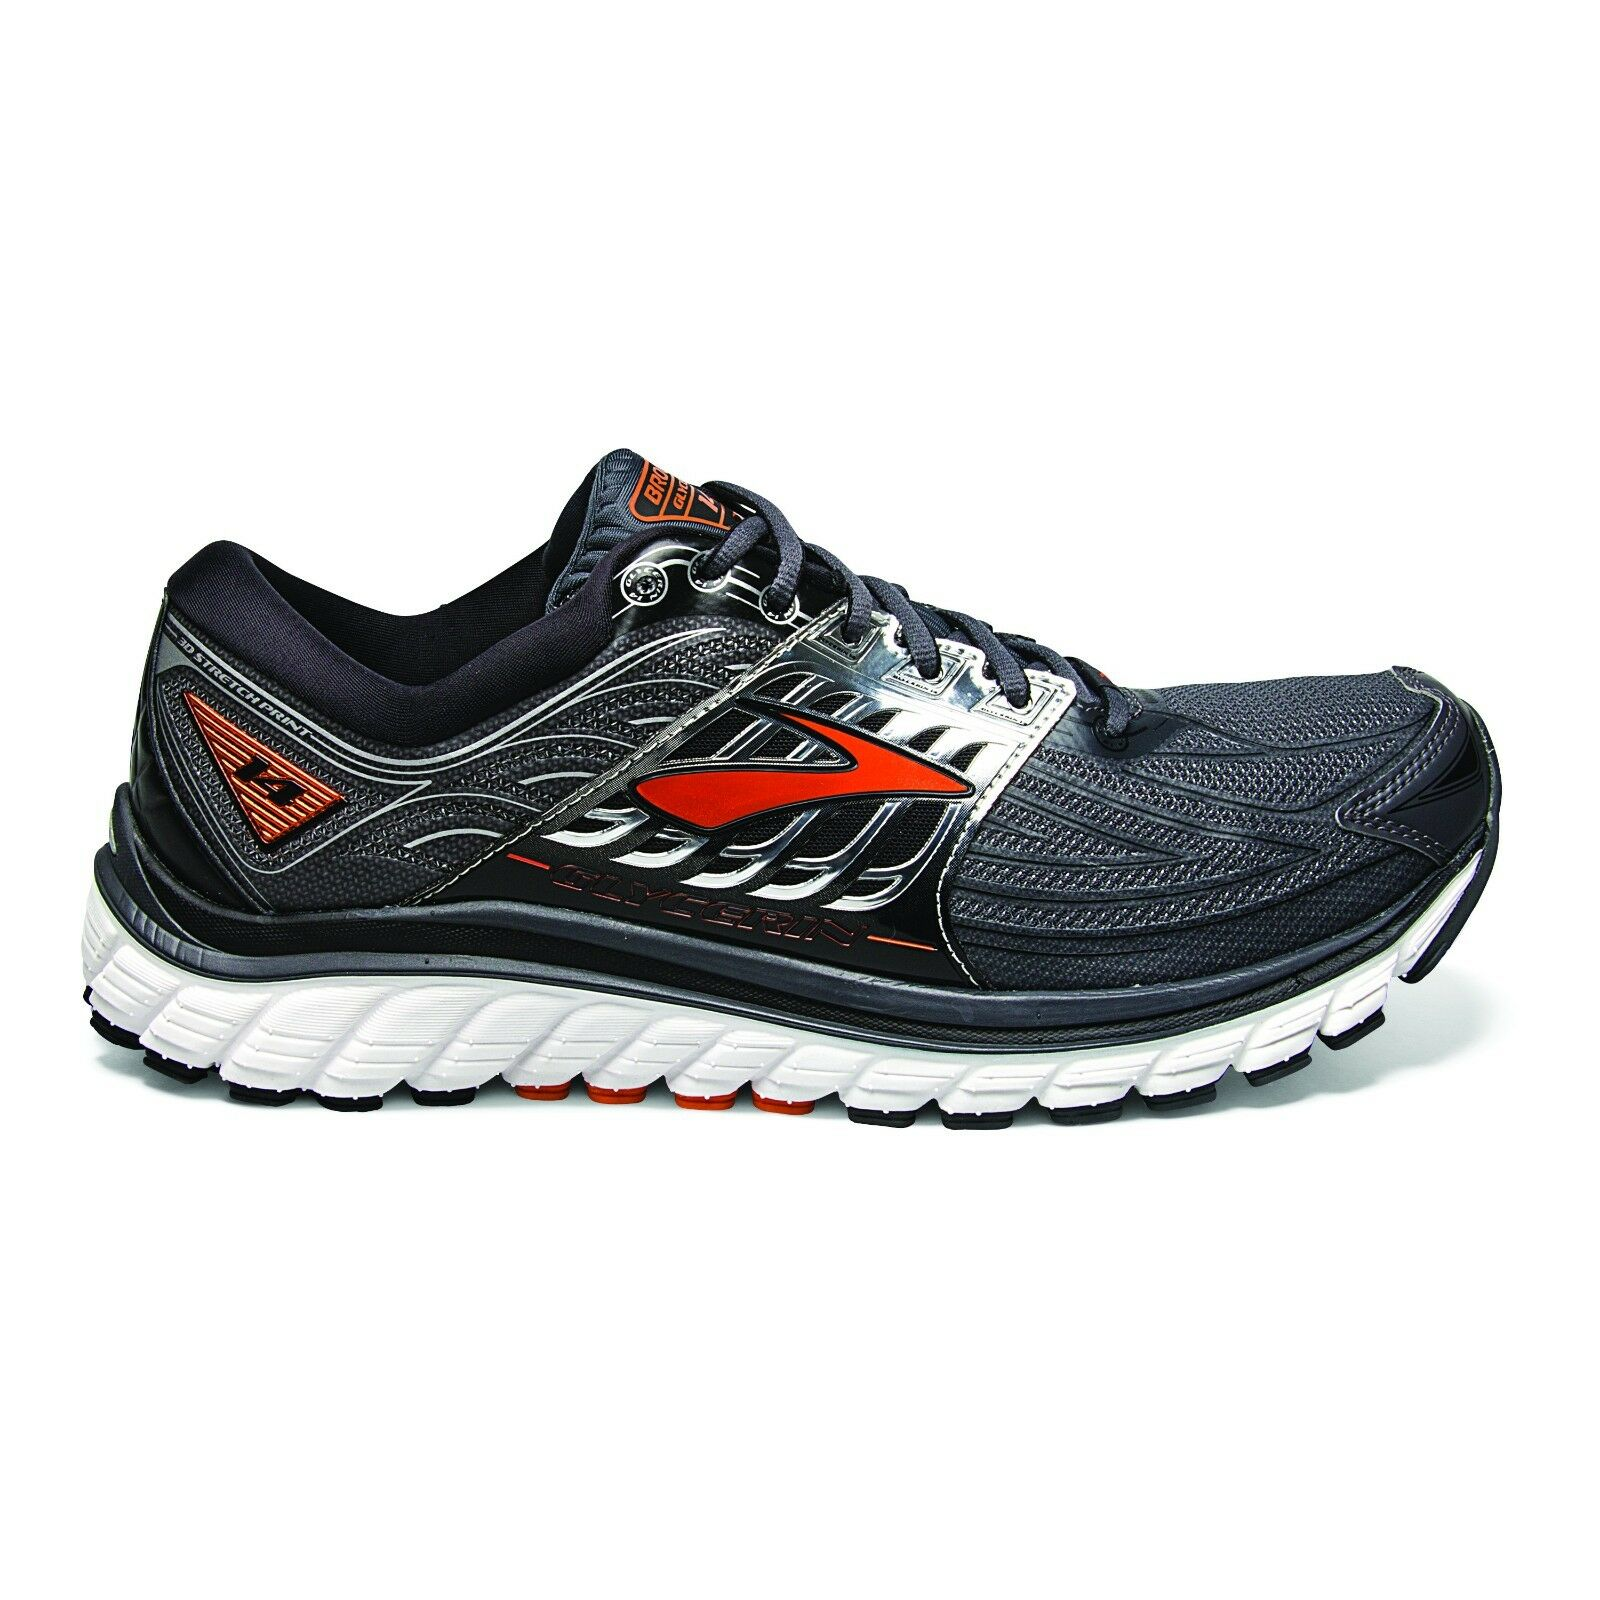 Brooks Glycerin Glycerin Brooks 14 Uomo Running Shoes (D) (075) + Free AUS Delivery 389145